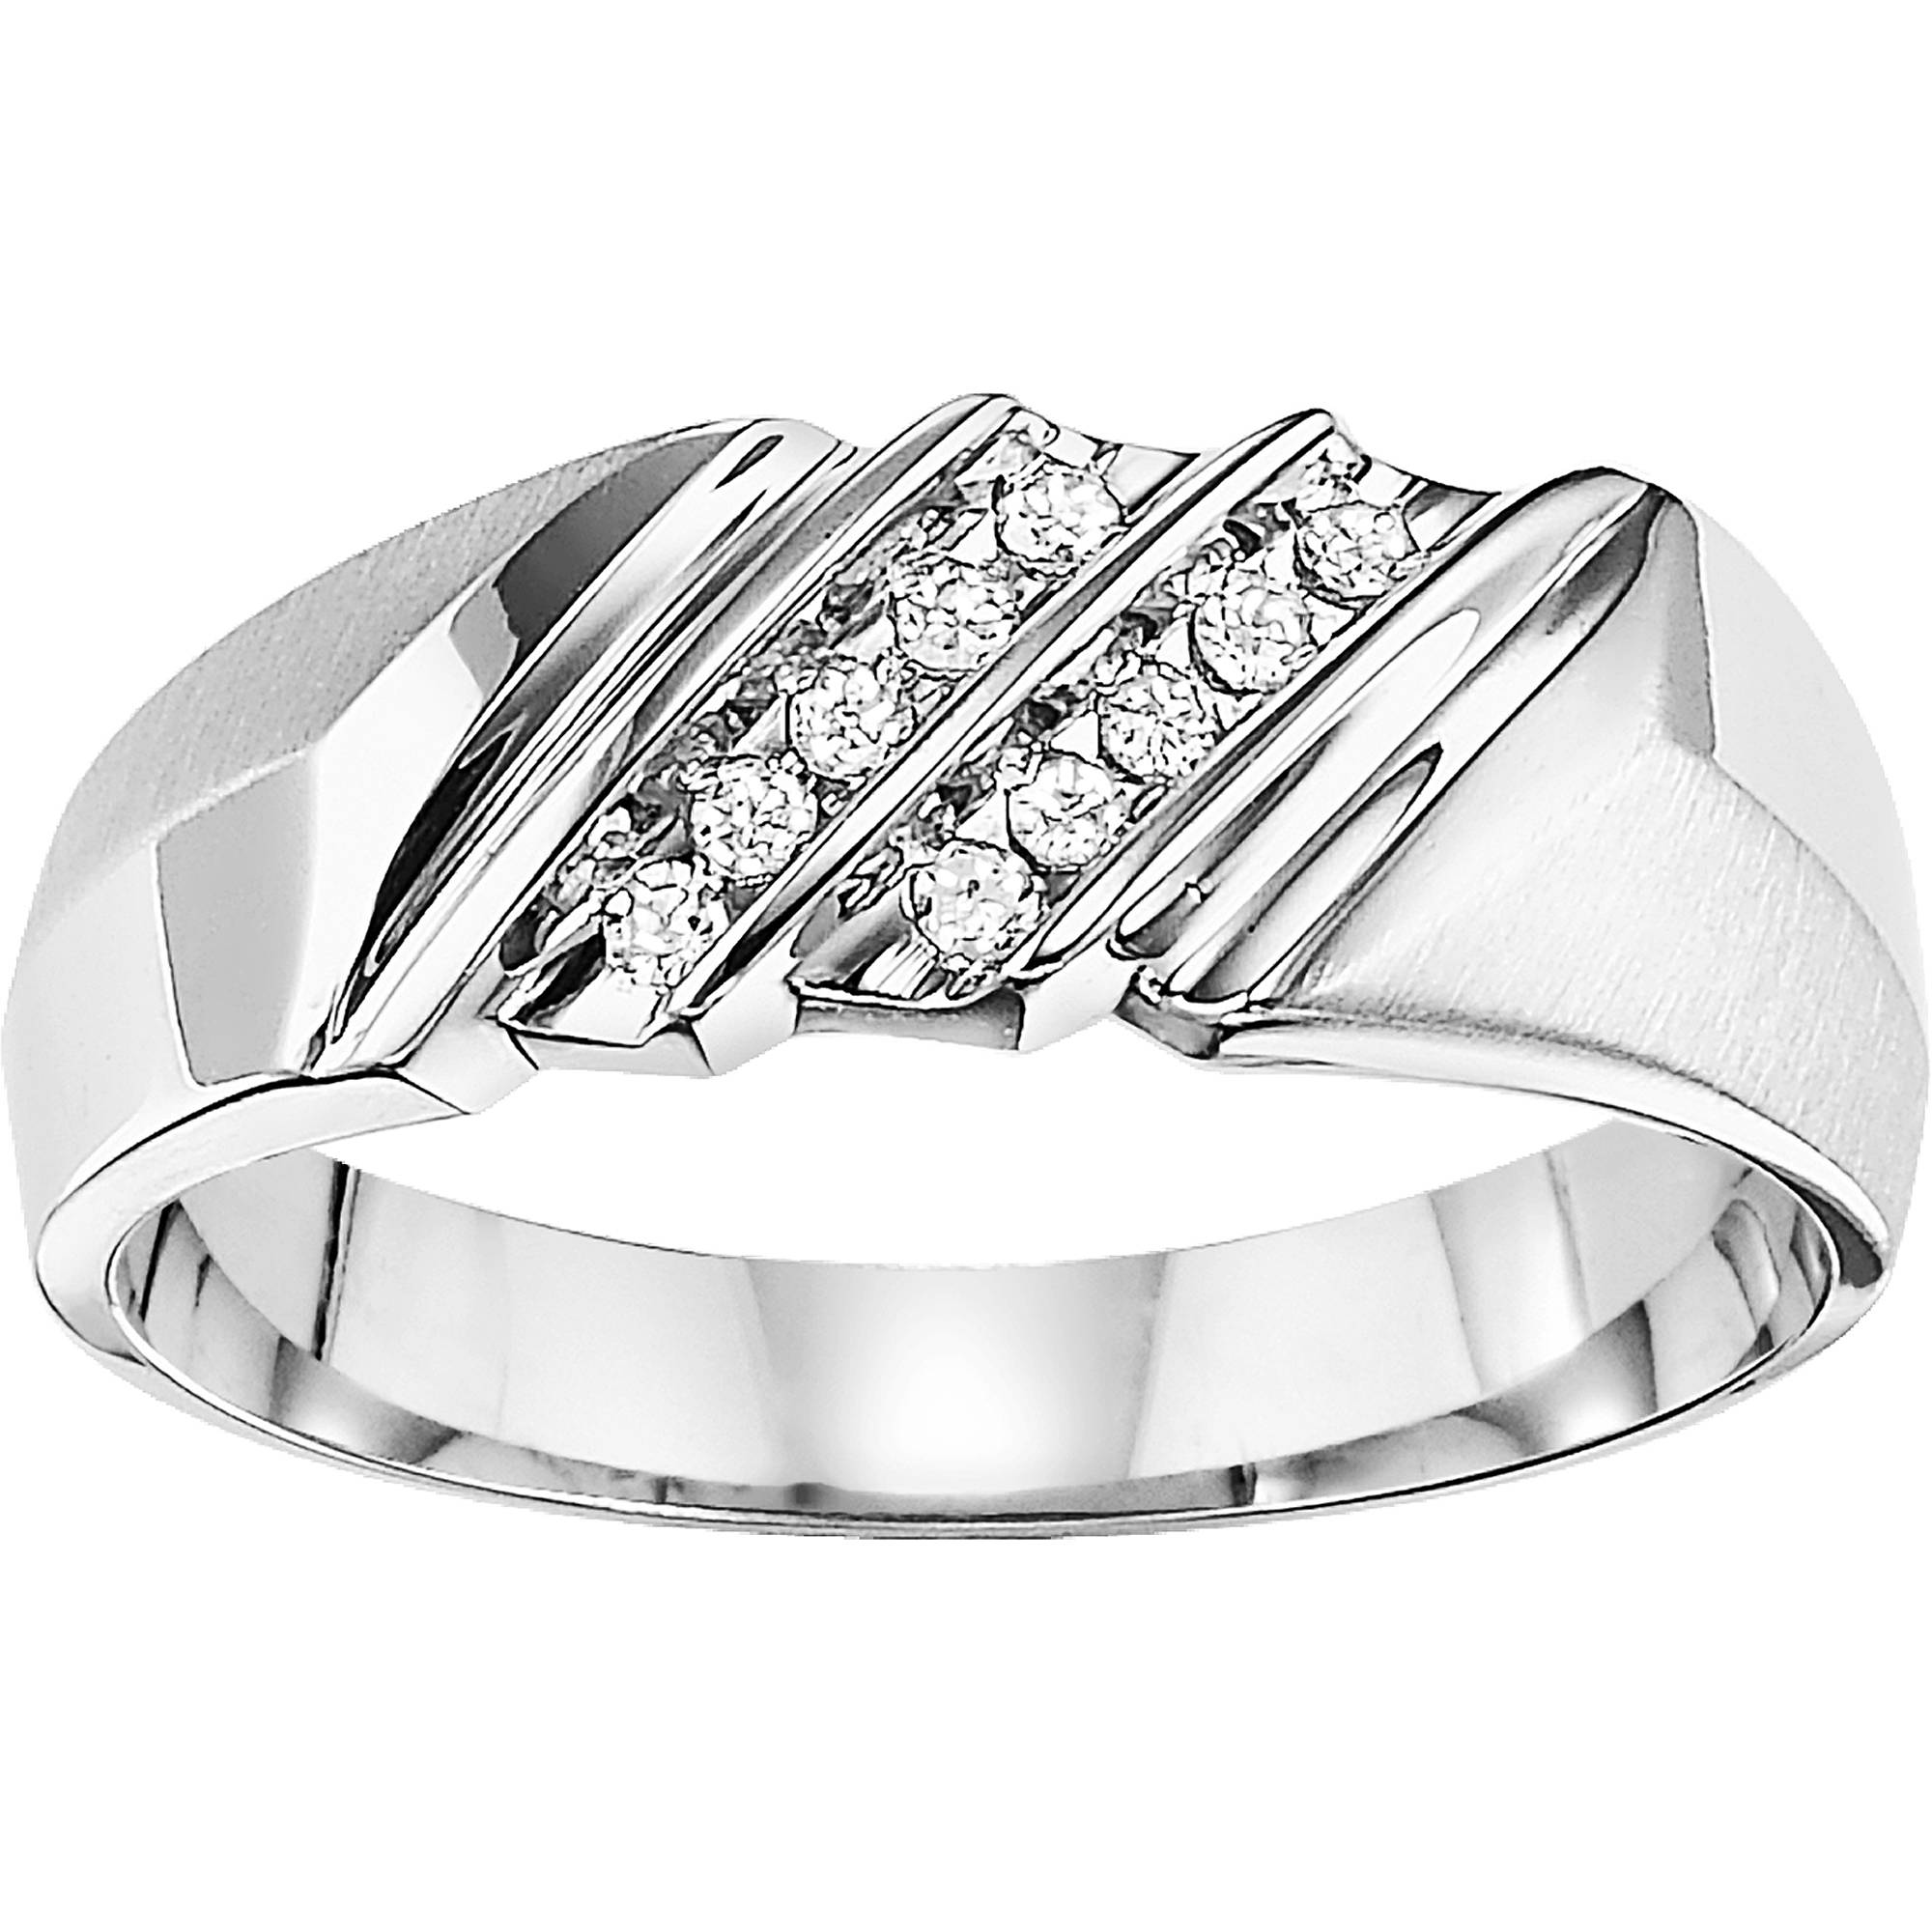 1/10 Carat T.W. Diamond Band in 10kt White Gold